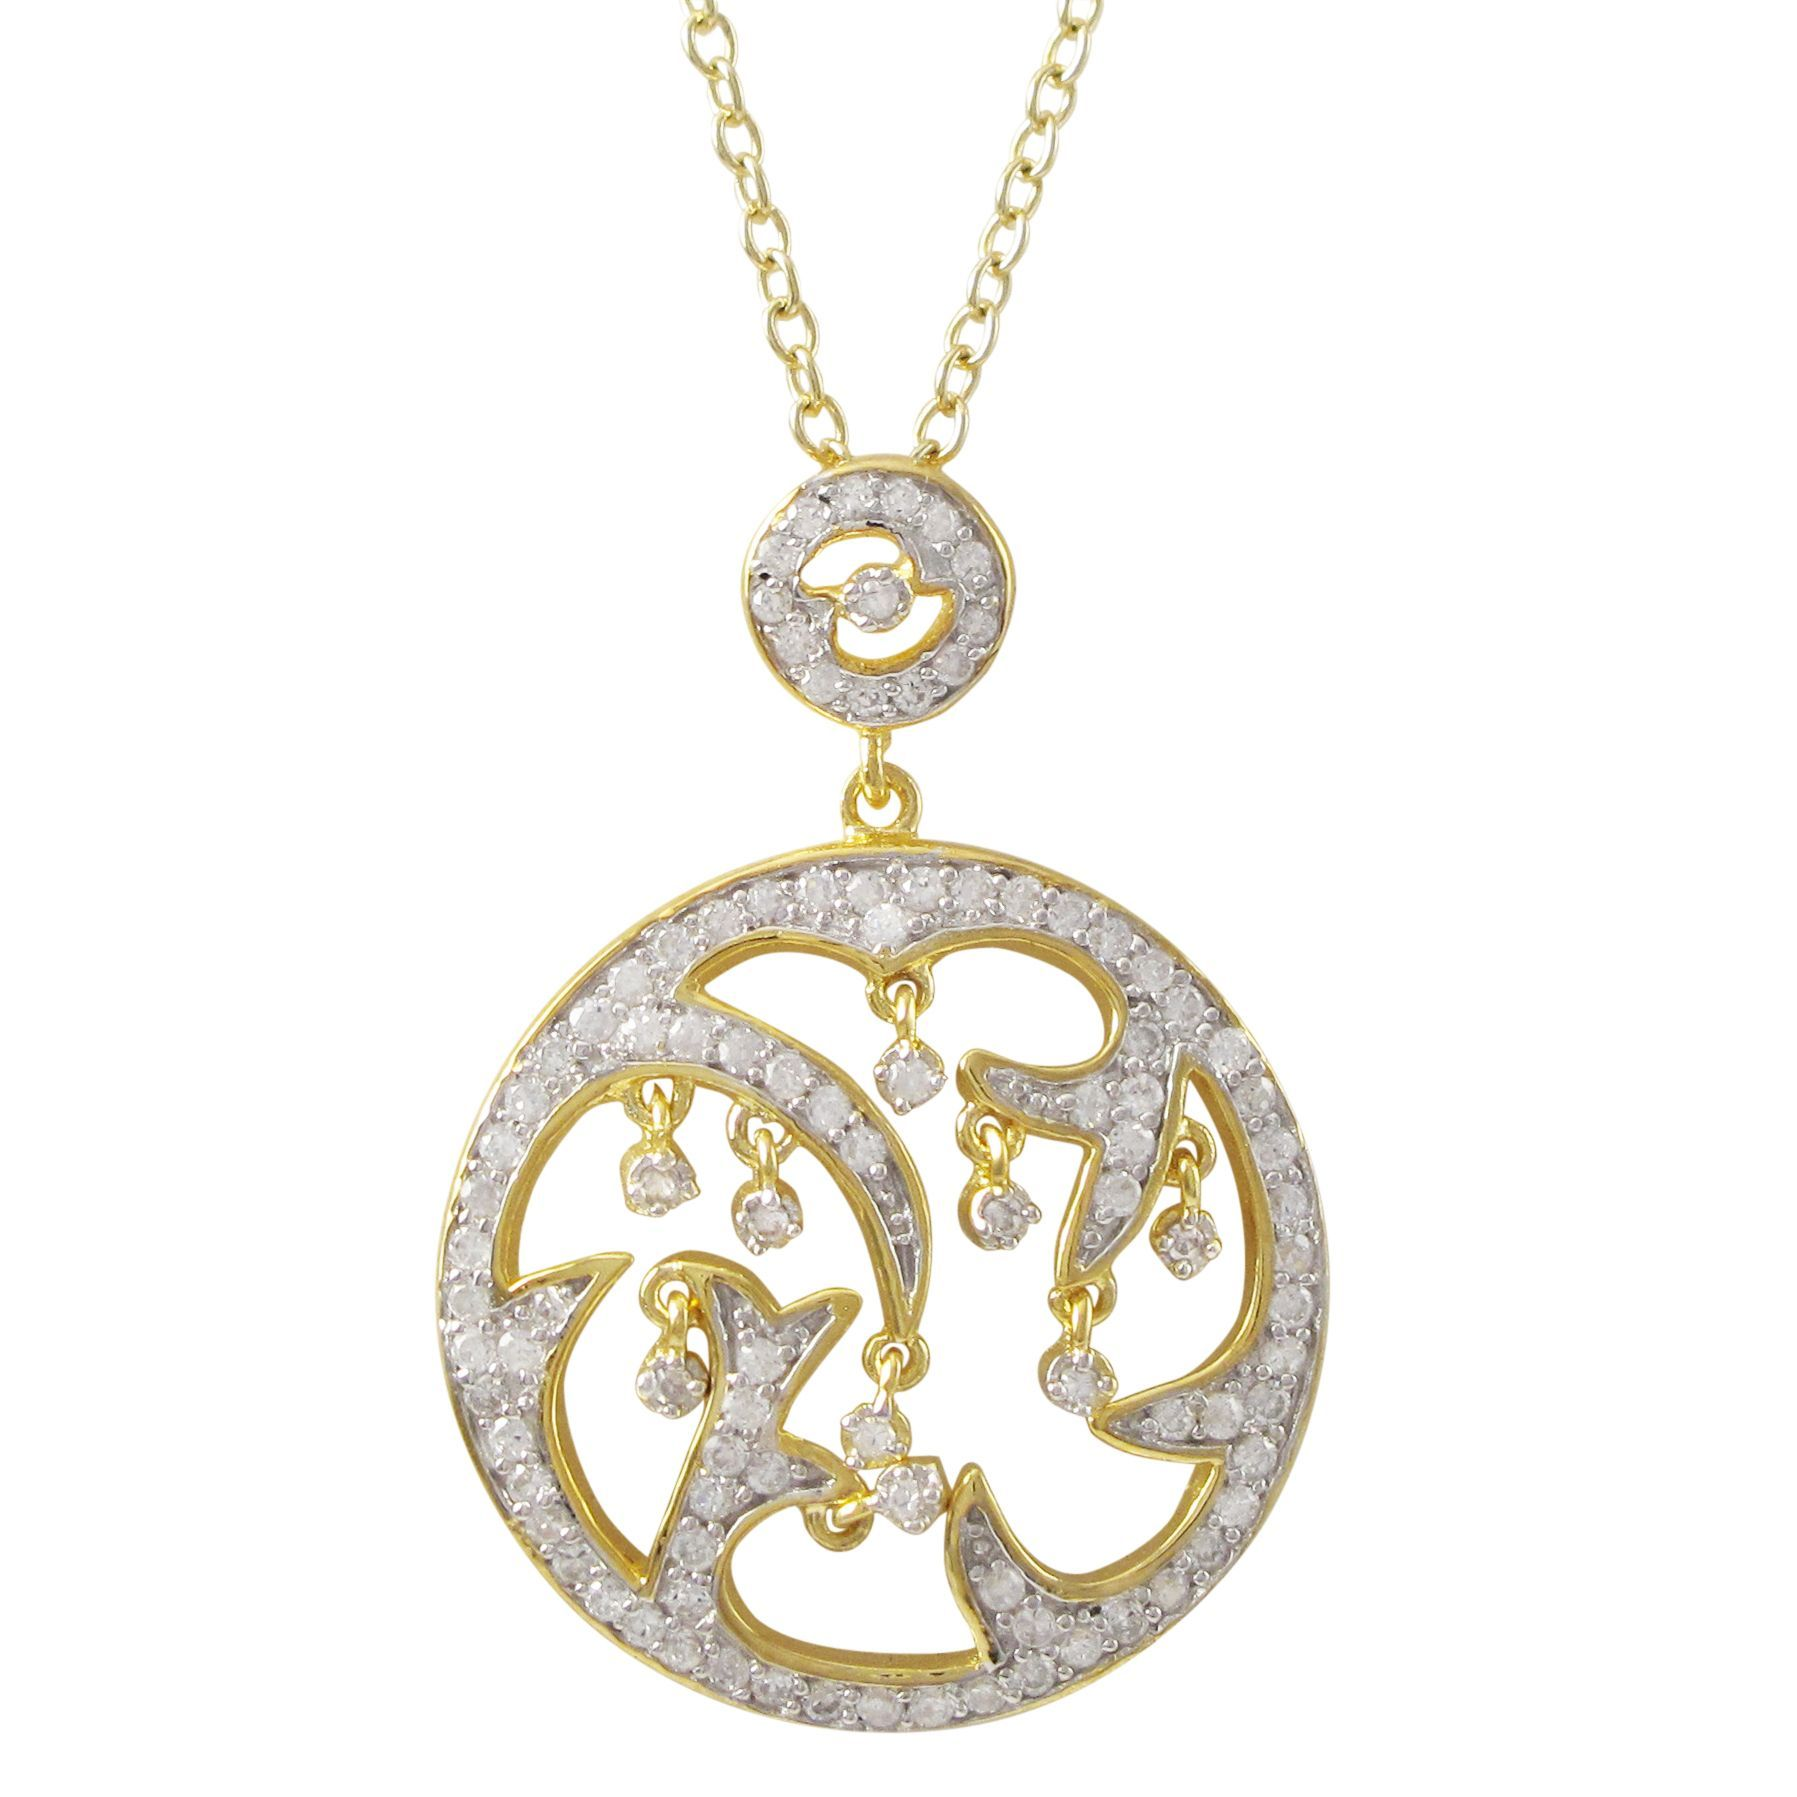 Luxiro Two-tone Gold Finish Sterling Silver Cubic Zirconia Circle Pendant Necklace (Silver), Women's, Size: 16 Inch